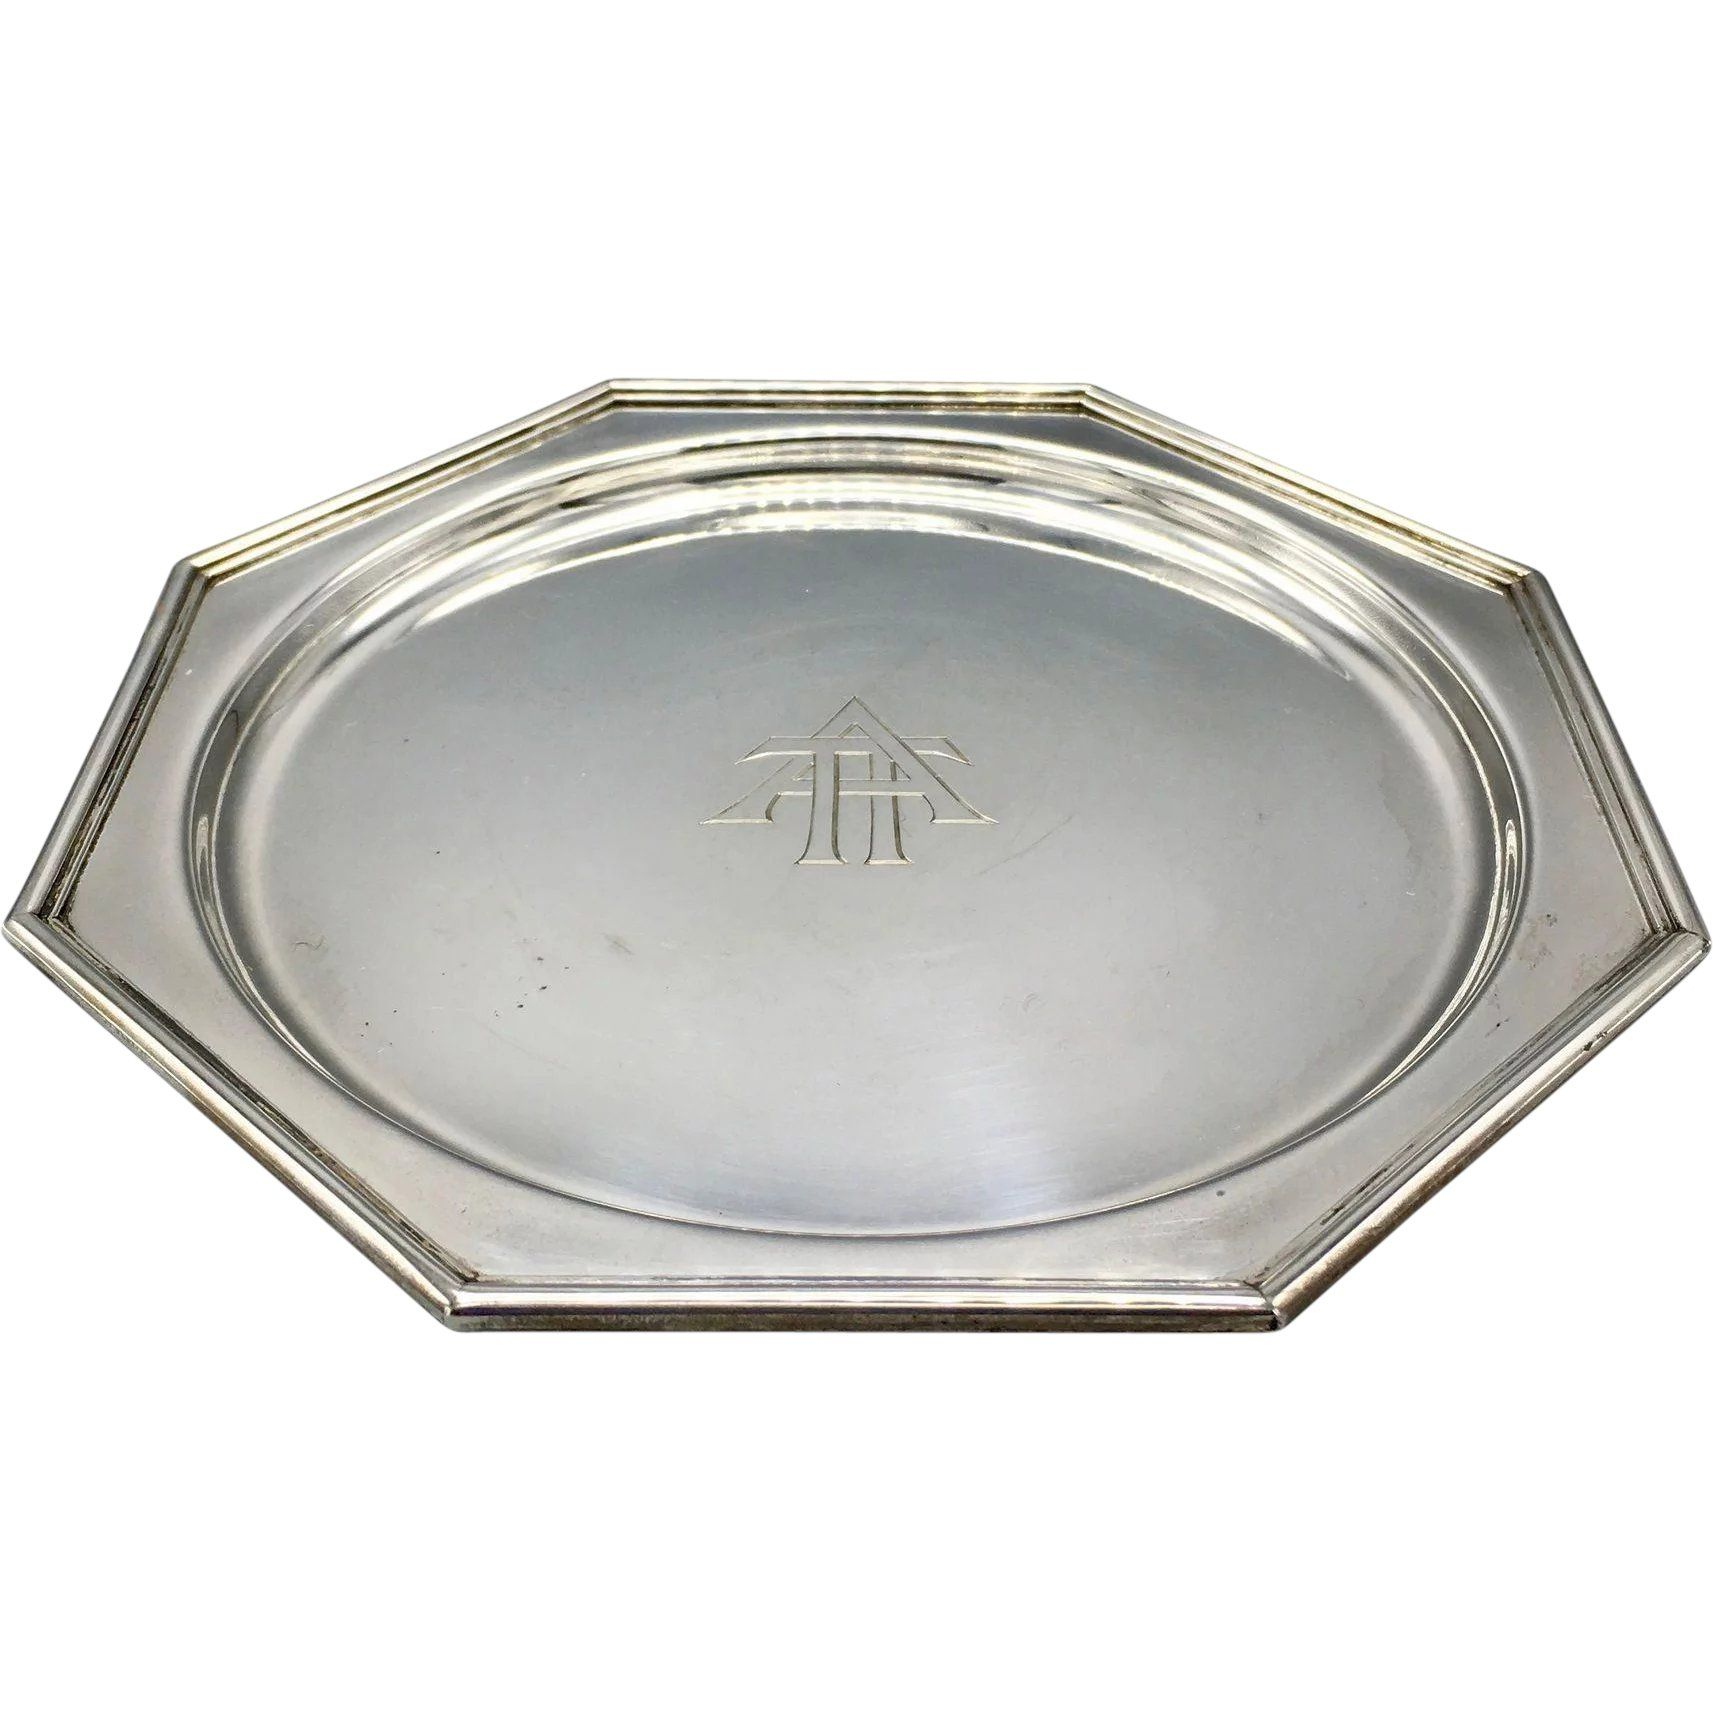 Antique J E  Caldwell Sterling Silver Art Deco Plate 6  is part of Silver Home Accessories Art Deco - A beautiful antique Art Deco sterling silver plate J E  Caldwell & Company of Philadelphia  There is a monogram 'ATT' in the center of the plate  The plate is marked 'J E  Caldwell & Company of Philadelphia' and '925 Sterling 1000 ' There is also an engraved name and a date on the back side 'Phyllis Douglas Cochran, Feb 19, 1927 ' The plate is in a very good condition  No dents, damage or repairs  It features the typical Art Deco geometric forms   A great finding for a J E  Caldwell collector or an admirer of antique silver   Measurements  The plate weighs 4 81 troy ounces (ozt) or 149 7 grams    Dimensions 6  x 6  The origins of J E  Caldwell jewelry date back to 1839, when watchmaker James Emmott Caldwell opened the doors of his Philadelphia wearable arts emporium  His target audience was always the wealthy Philadelphia jewelry buyer who had a penchant for the flair of Europeanstyle jewels  In the course of time, Caldwell added silver and objets d'art to his lineup of goods  It took the Caldwell name a few changes in location and of management to get established in the city  In 1868, the Caldwell location at 902 Chestnut Street was established  When the Art Nouveau fashion gripped the United States by the end of the 19th century, Caldwell's artisans were instrumental in setting a tone for the trend  Their handmade pieces were considered by many the definitive jewels of the period  In keeping with the Art Nouveau style, the motifs include examples of flora and objects rich in curvatures  Moving the store to the corner of Juniper and Chestnut in 1916, the Caldwell firm next tackled the Art Deco craze  Once again, the artisans embraced the new style and put their own spins on it  The result was a reputation for superior Art Deco jewelry that not only cemented the company's name at the time but keeps making it famous to this day